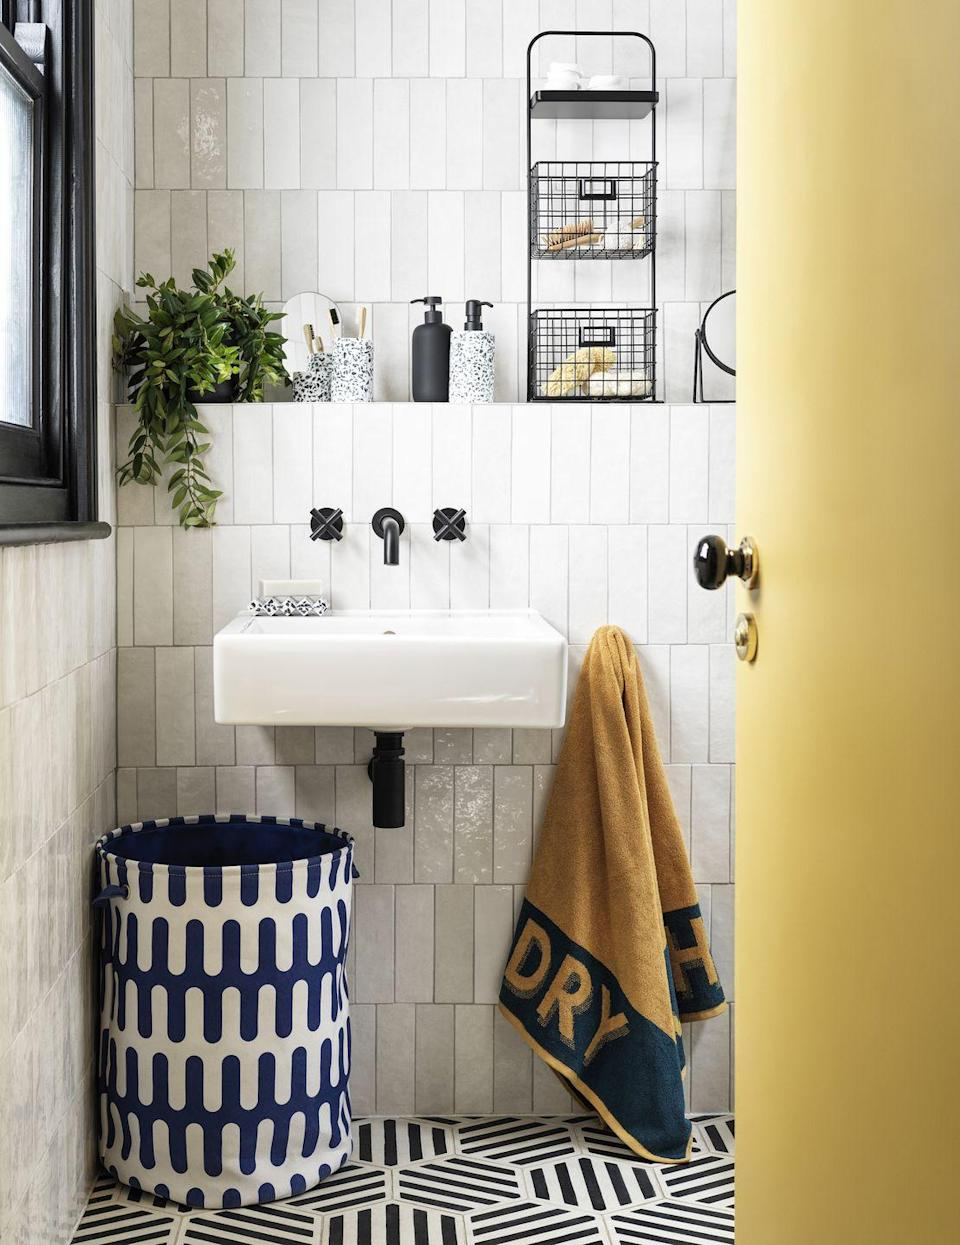 <p>Whether you're on the hunt for new towels, a laundry basket or bathroom storage, Habitat's must-have range is the place to shop. A simple way to spruce up your space without breaking the bank, we've got a long list of things to buy...</p>